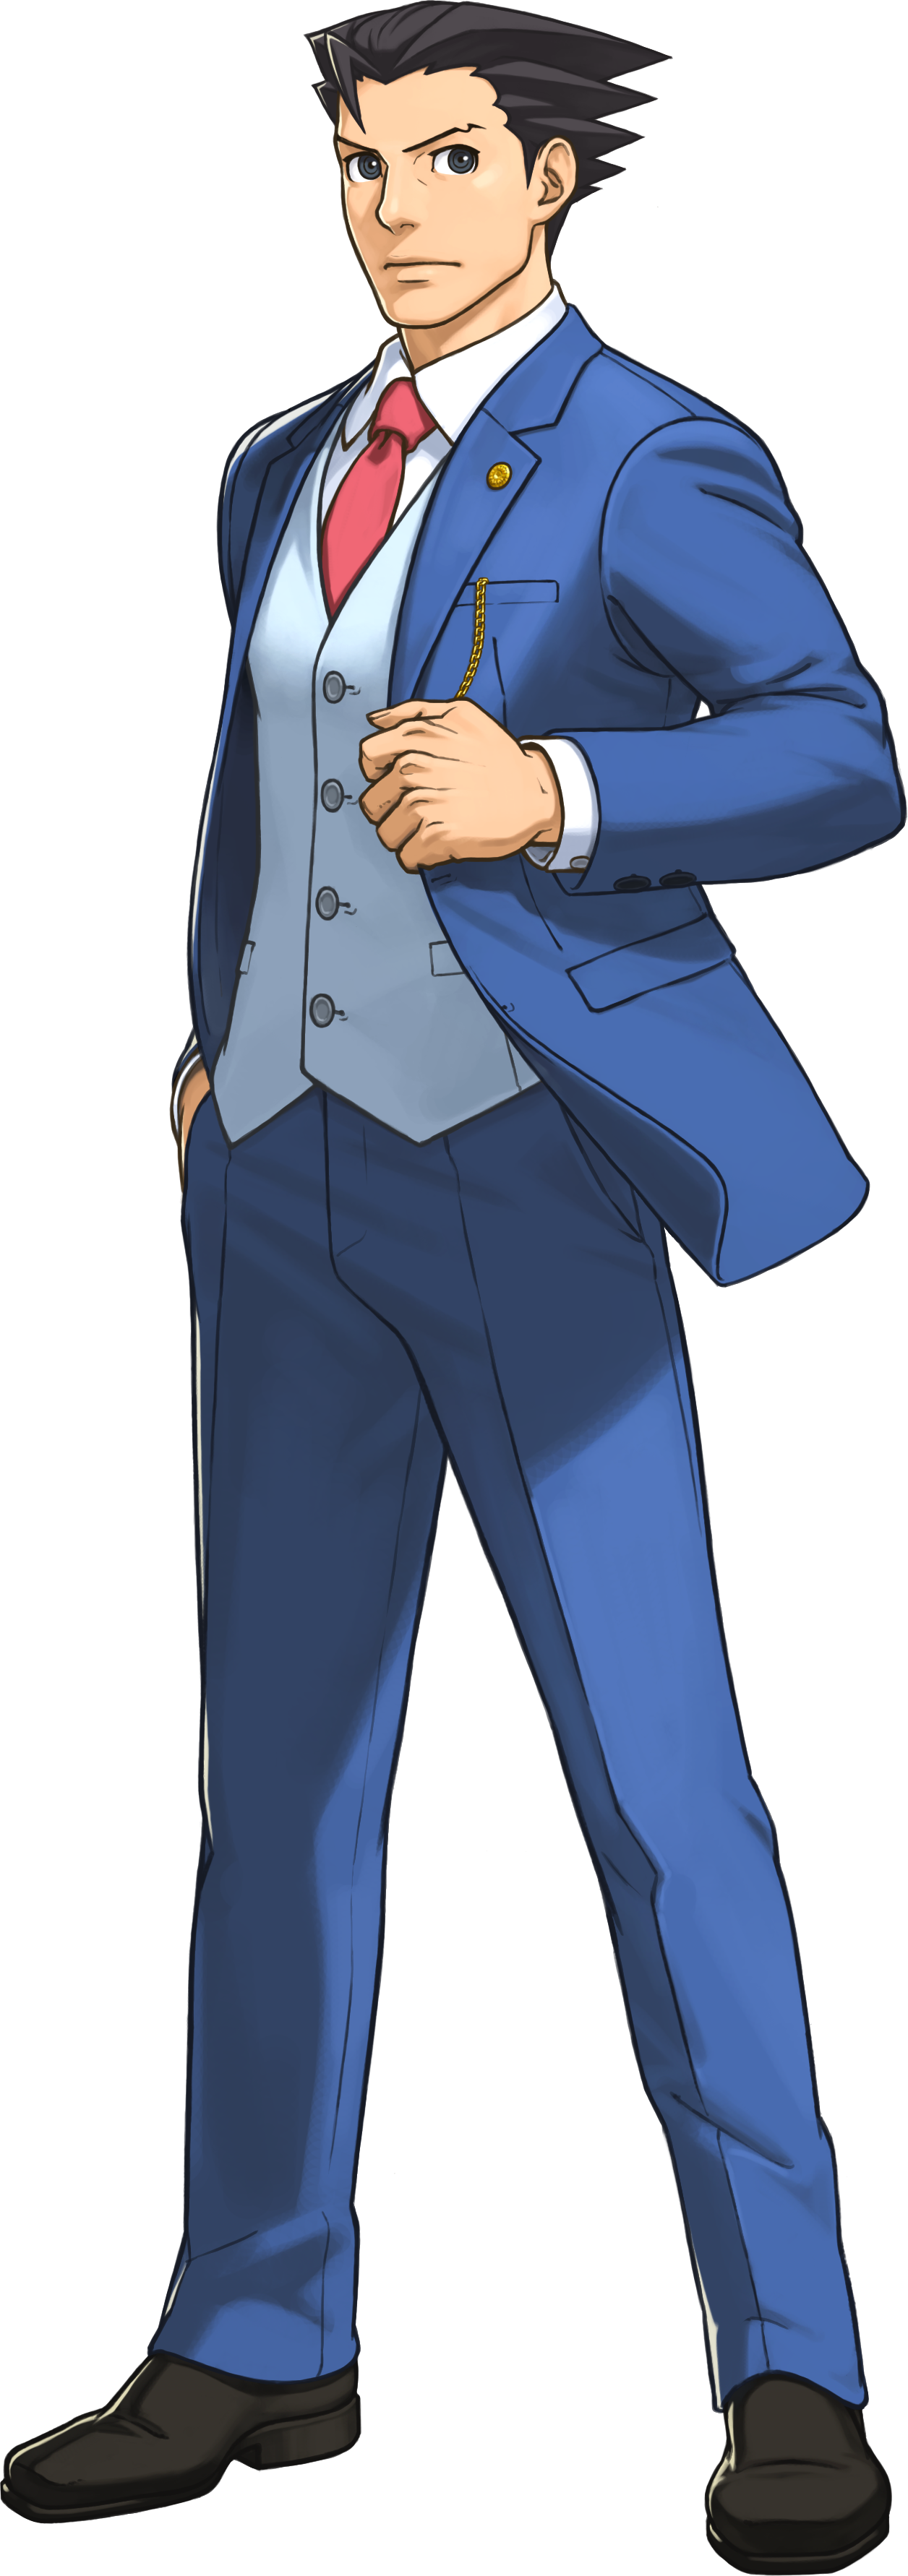 Ace attorney clipart graphic library Ace Attorney PNG Transparent Images | Free Download Clip Art ... graphic library